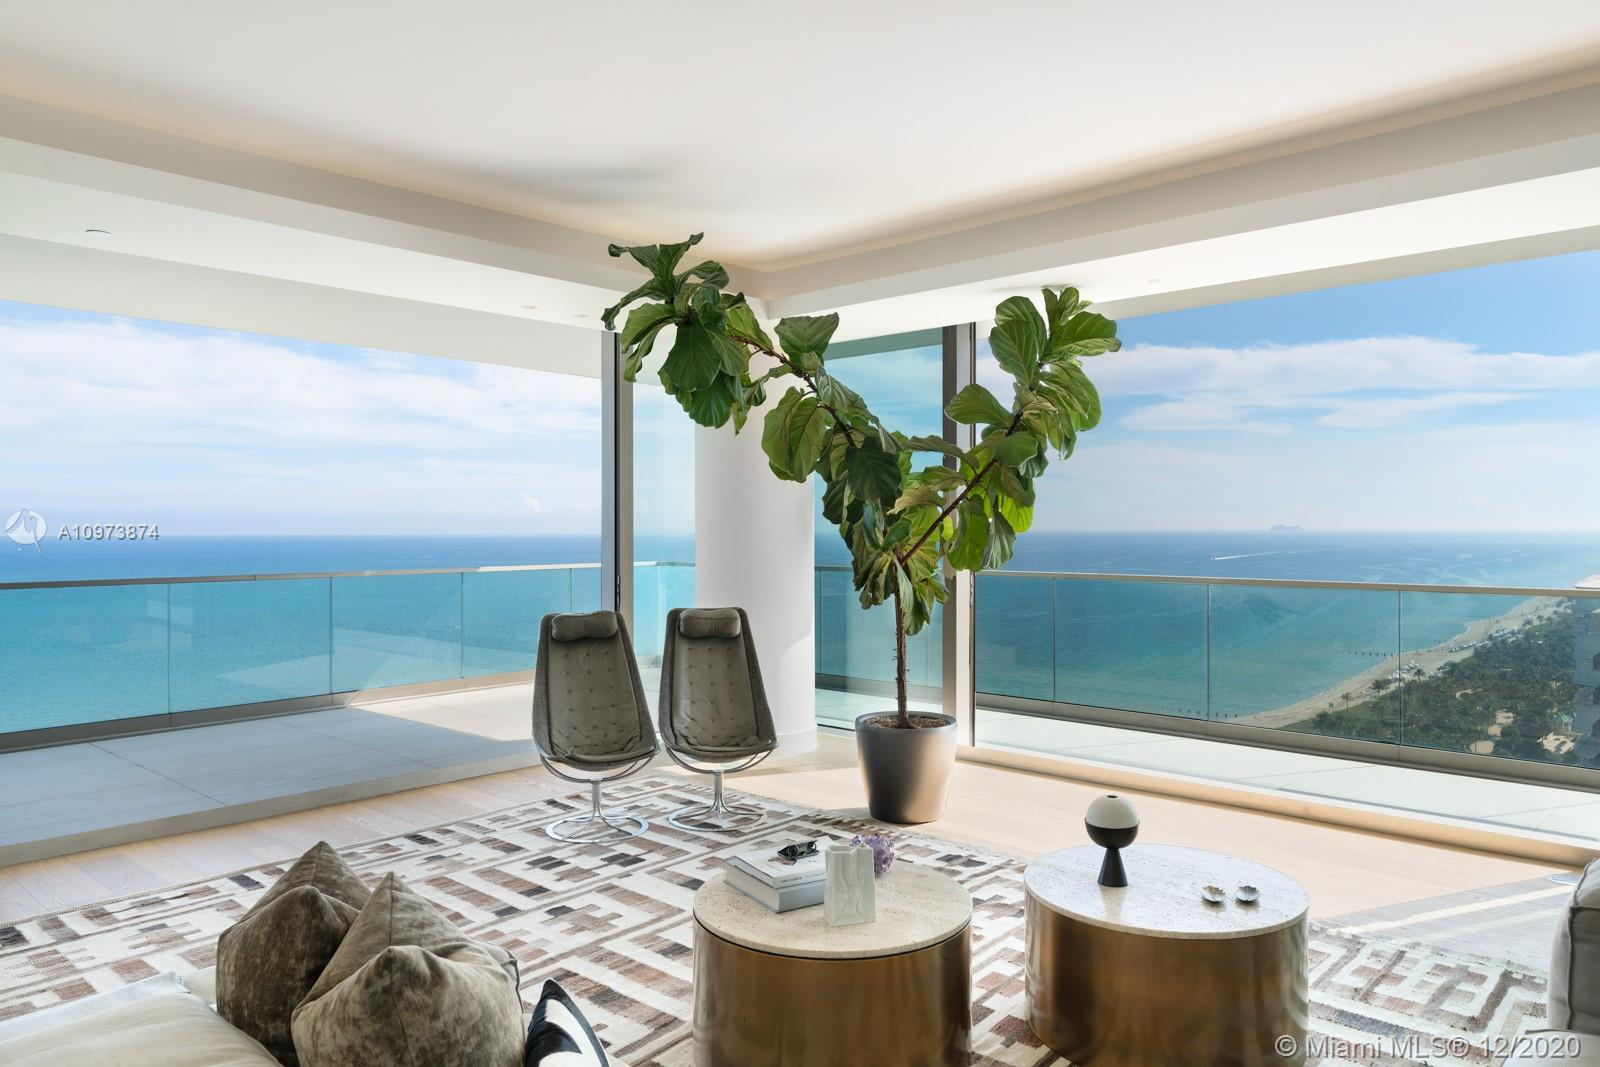 10201 Collins Ave, Unit #2001 Luxury Real Estate